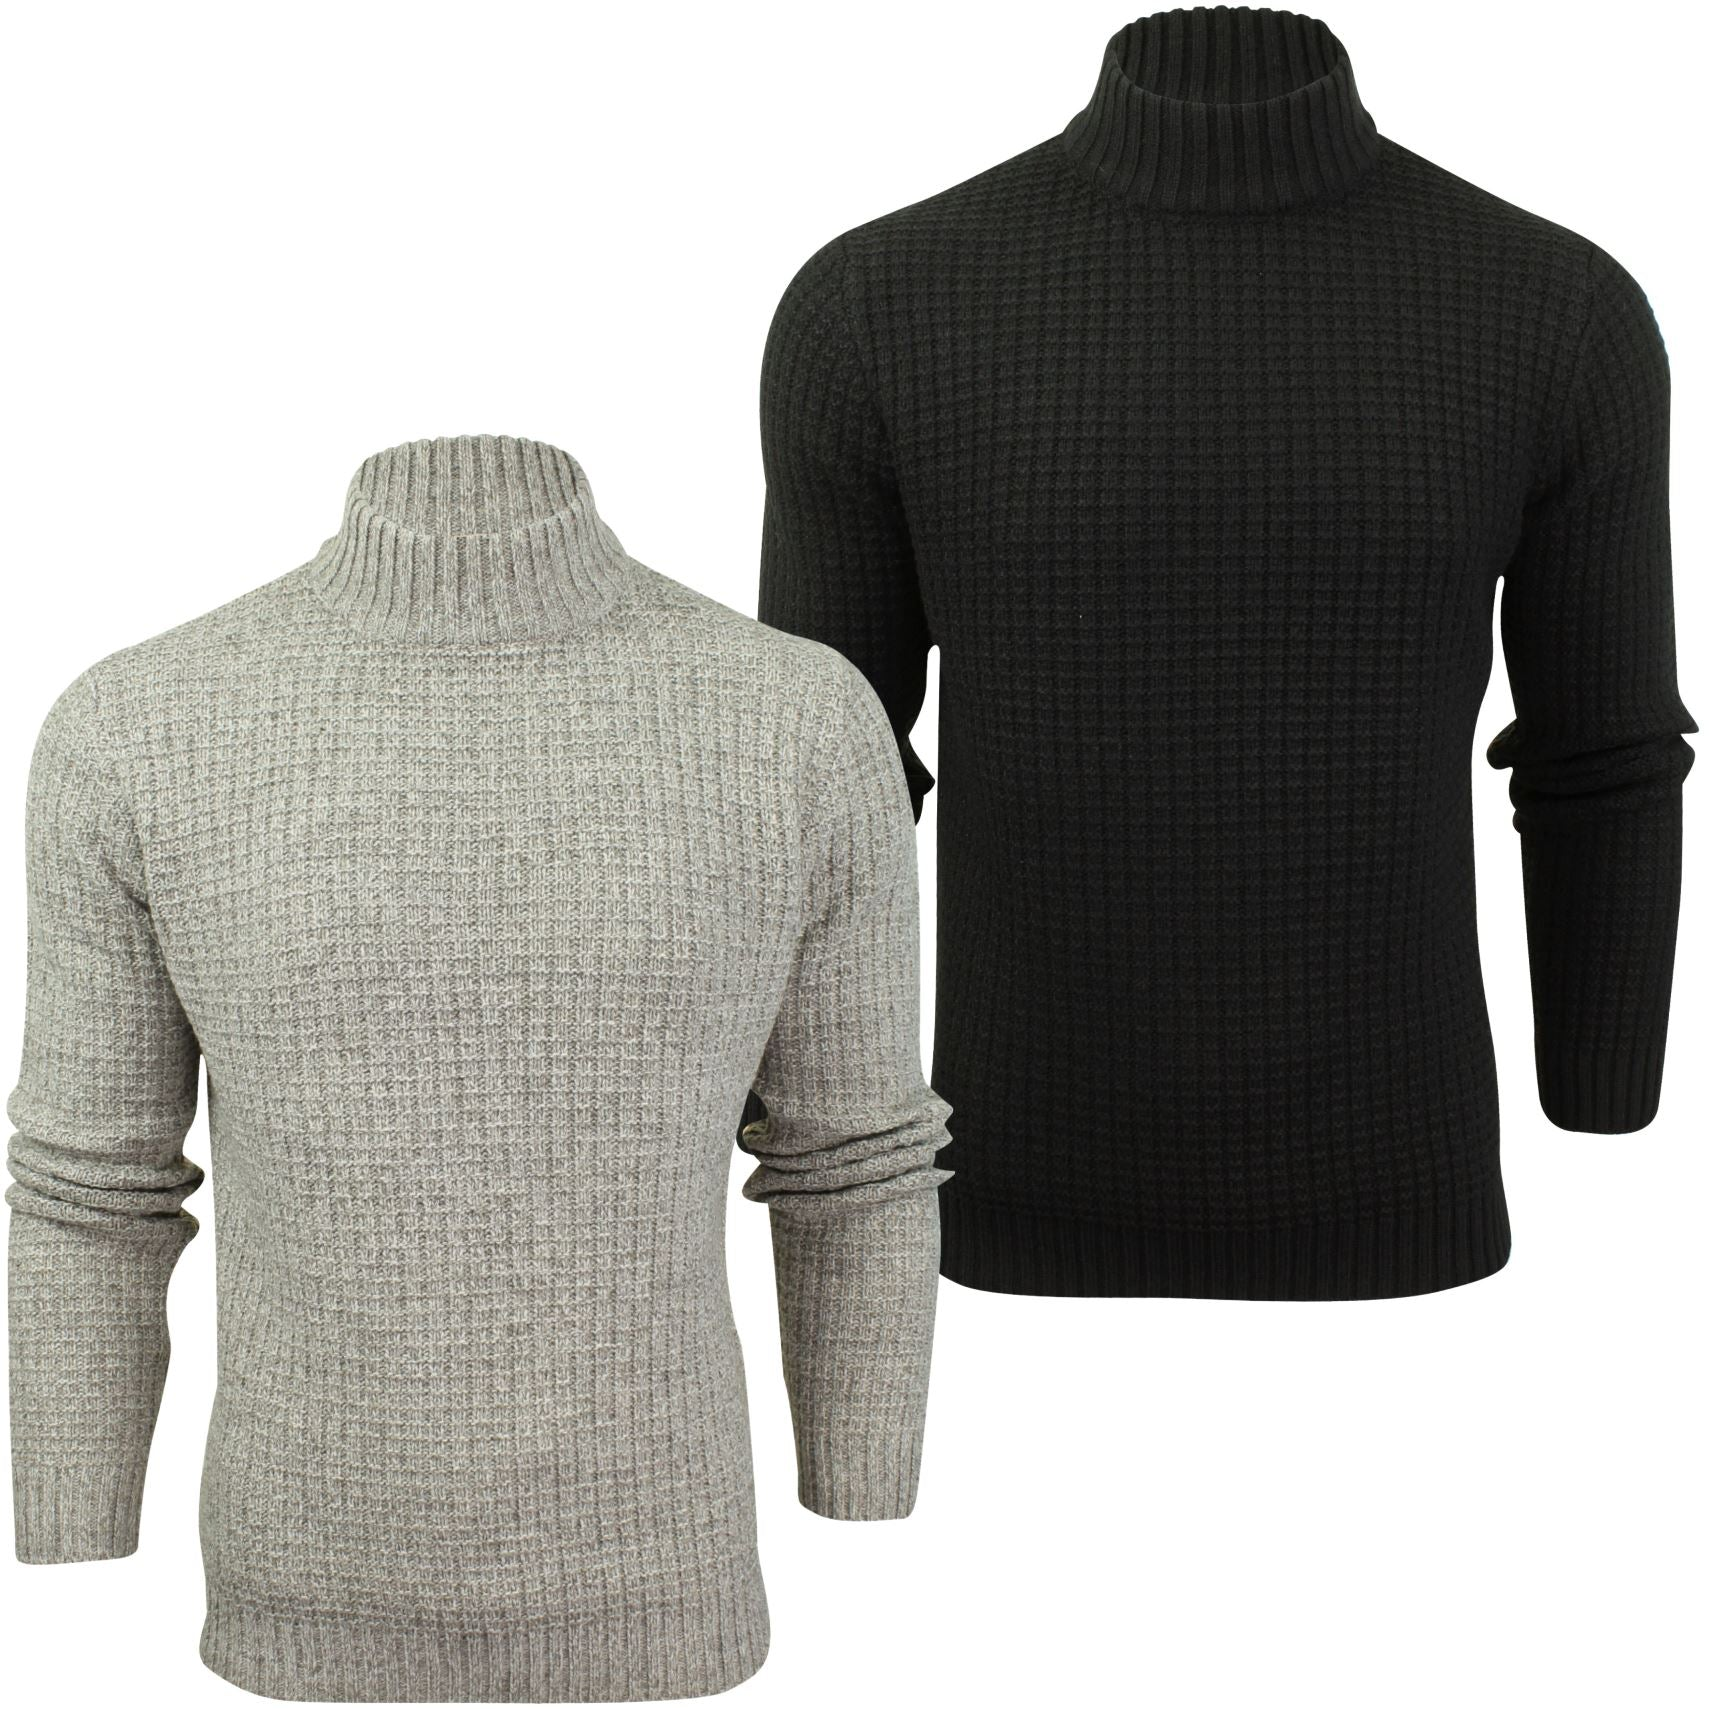 Mens Wool Blend Jumper Turtle Neck  by Xact_01_XK1017